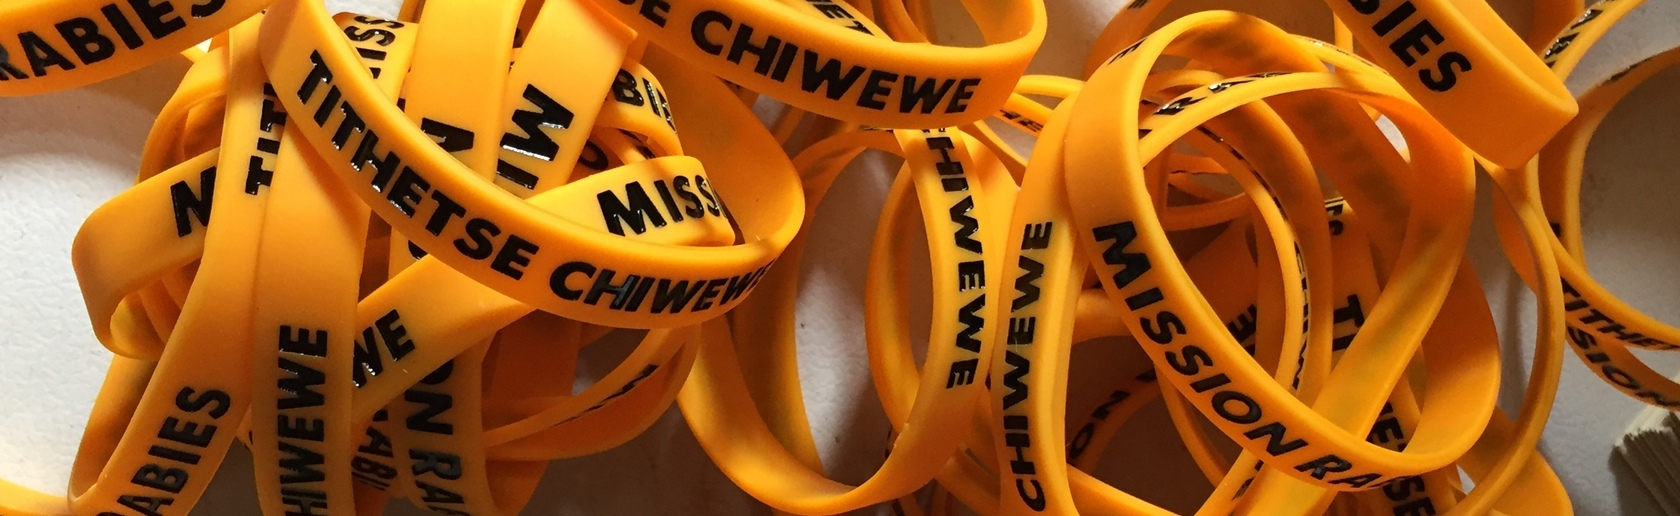 Pile of rubber wristbands with Mission Rabies and Tithetse Chiwewe written on them